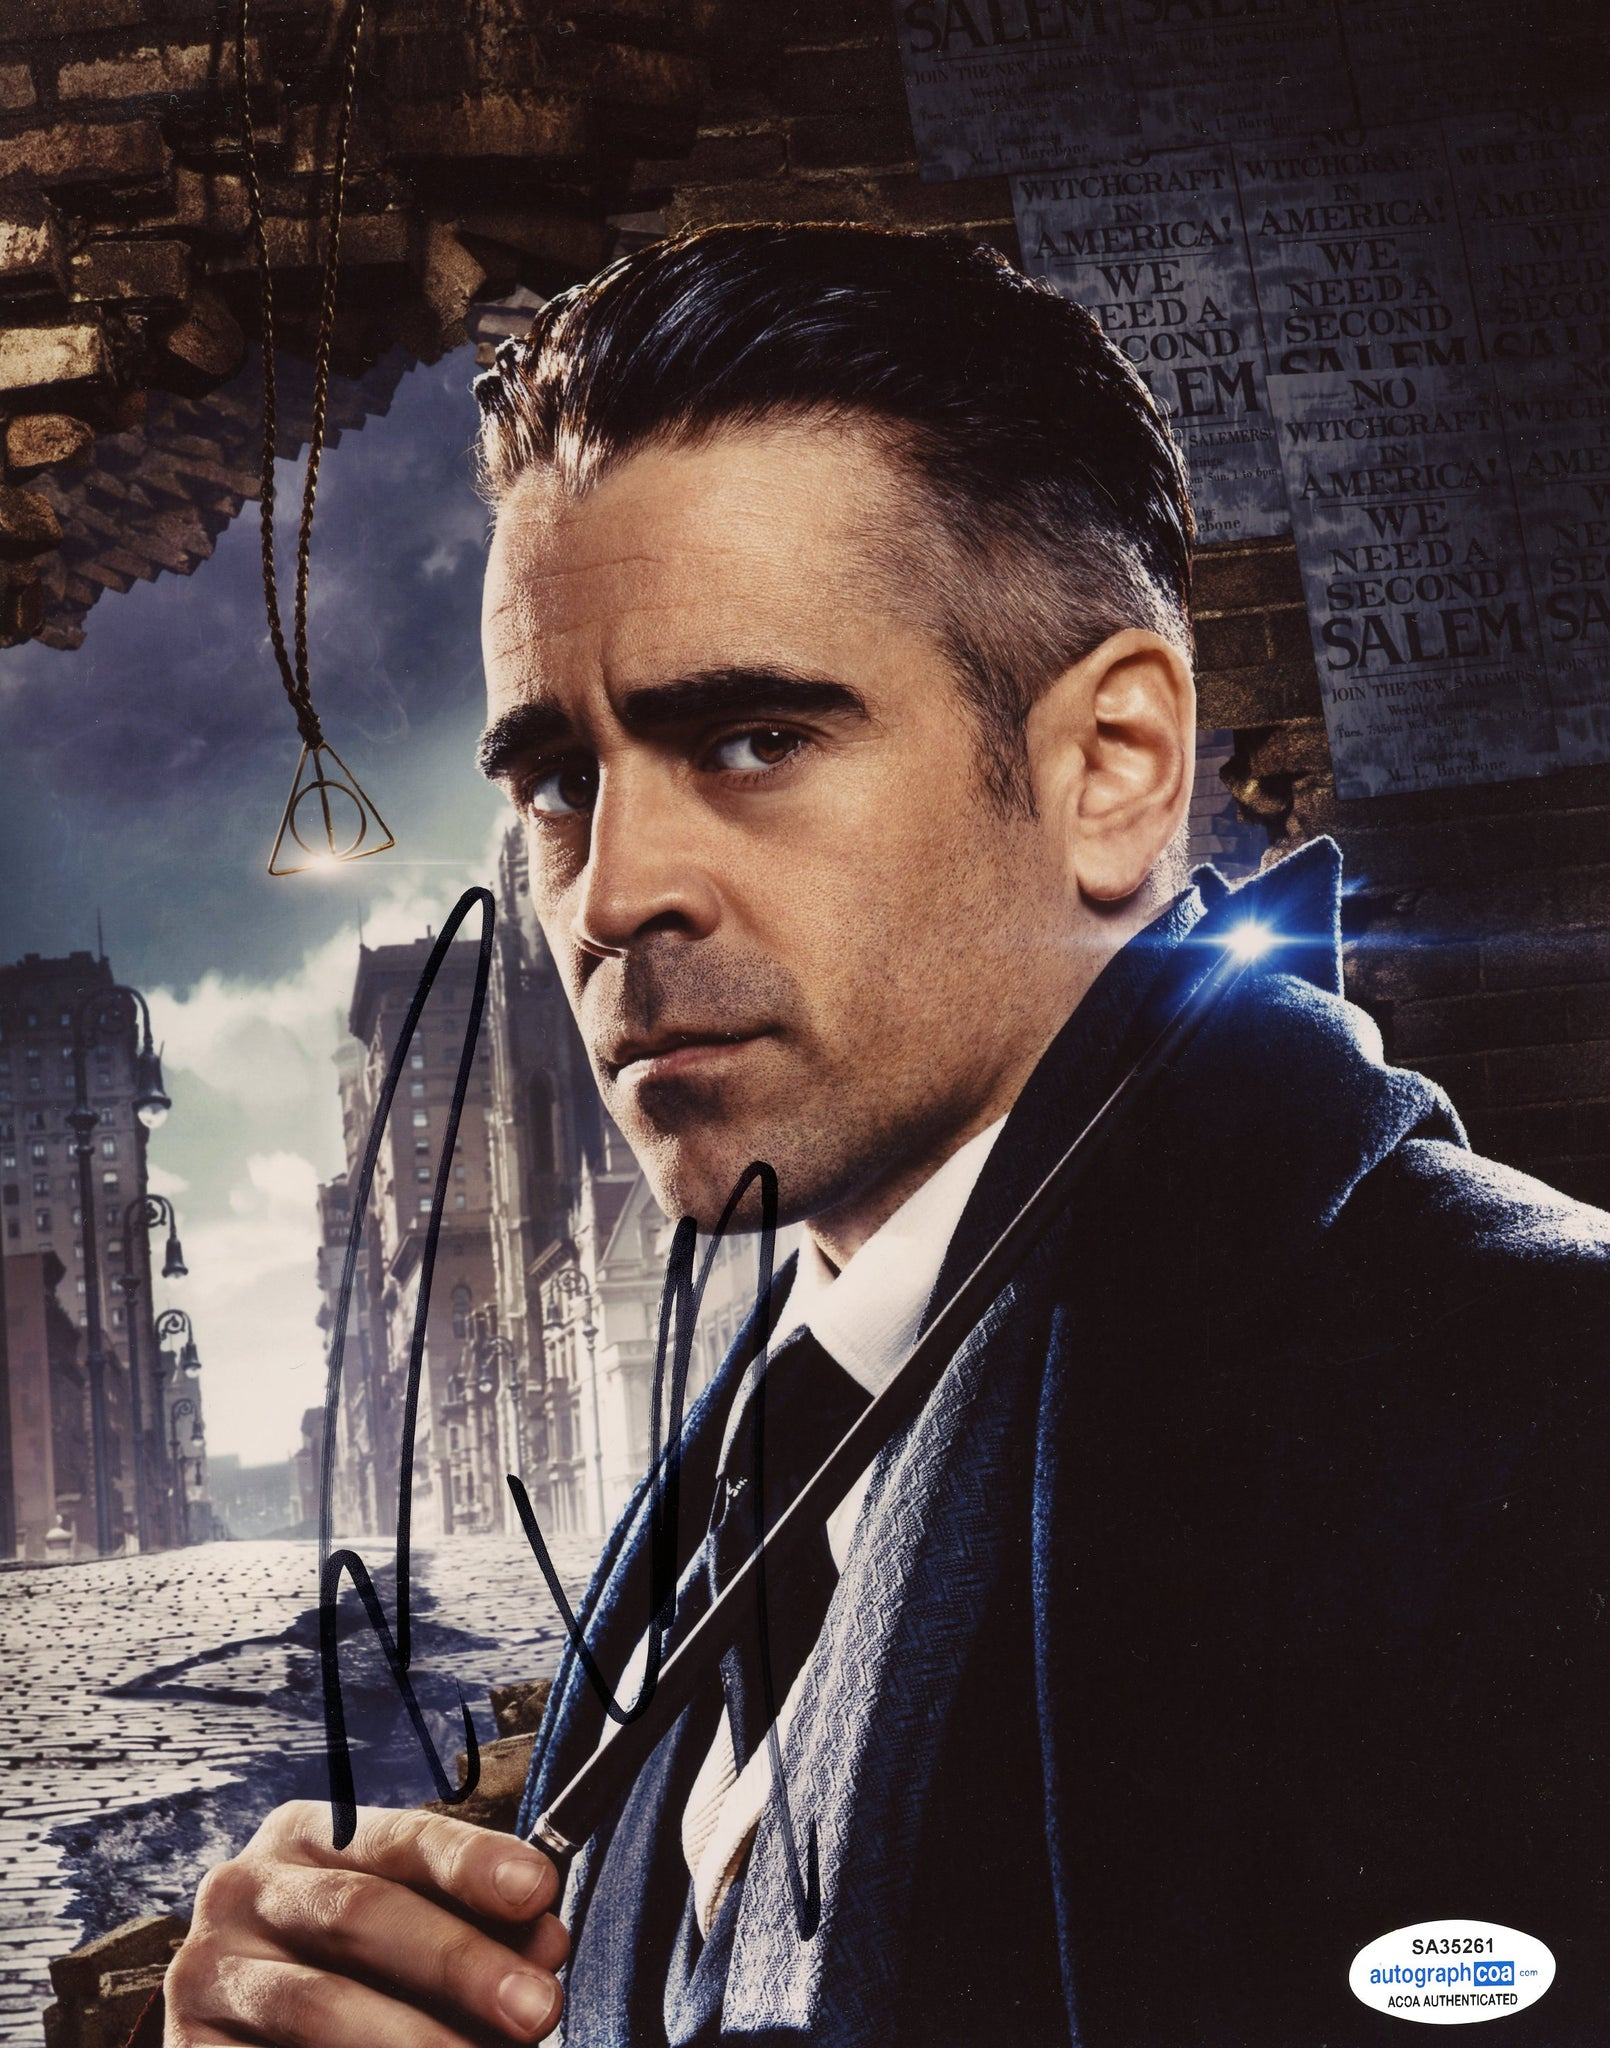 Colin Farrell Fantastic Beasts Harry Potter Signed Autograph 8x10 Photo ACOA - Outlaw Hobbies Authentic Autographs